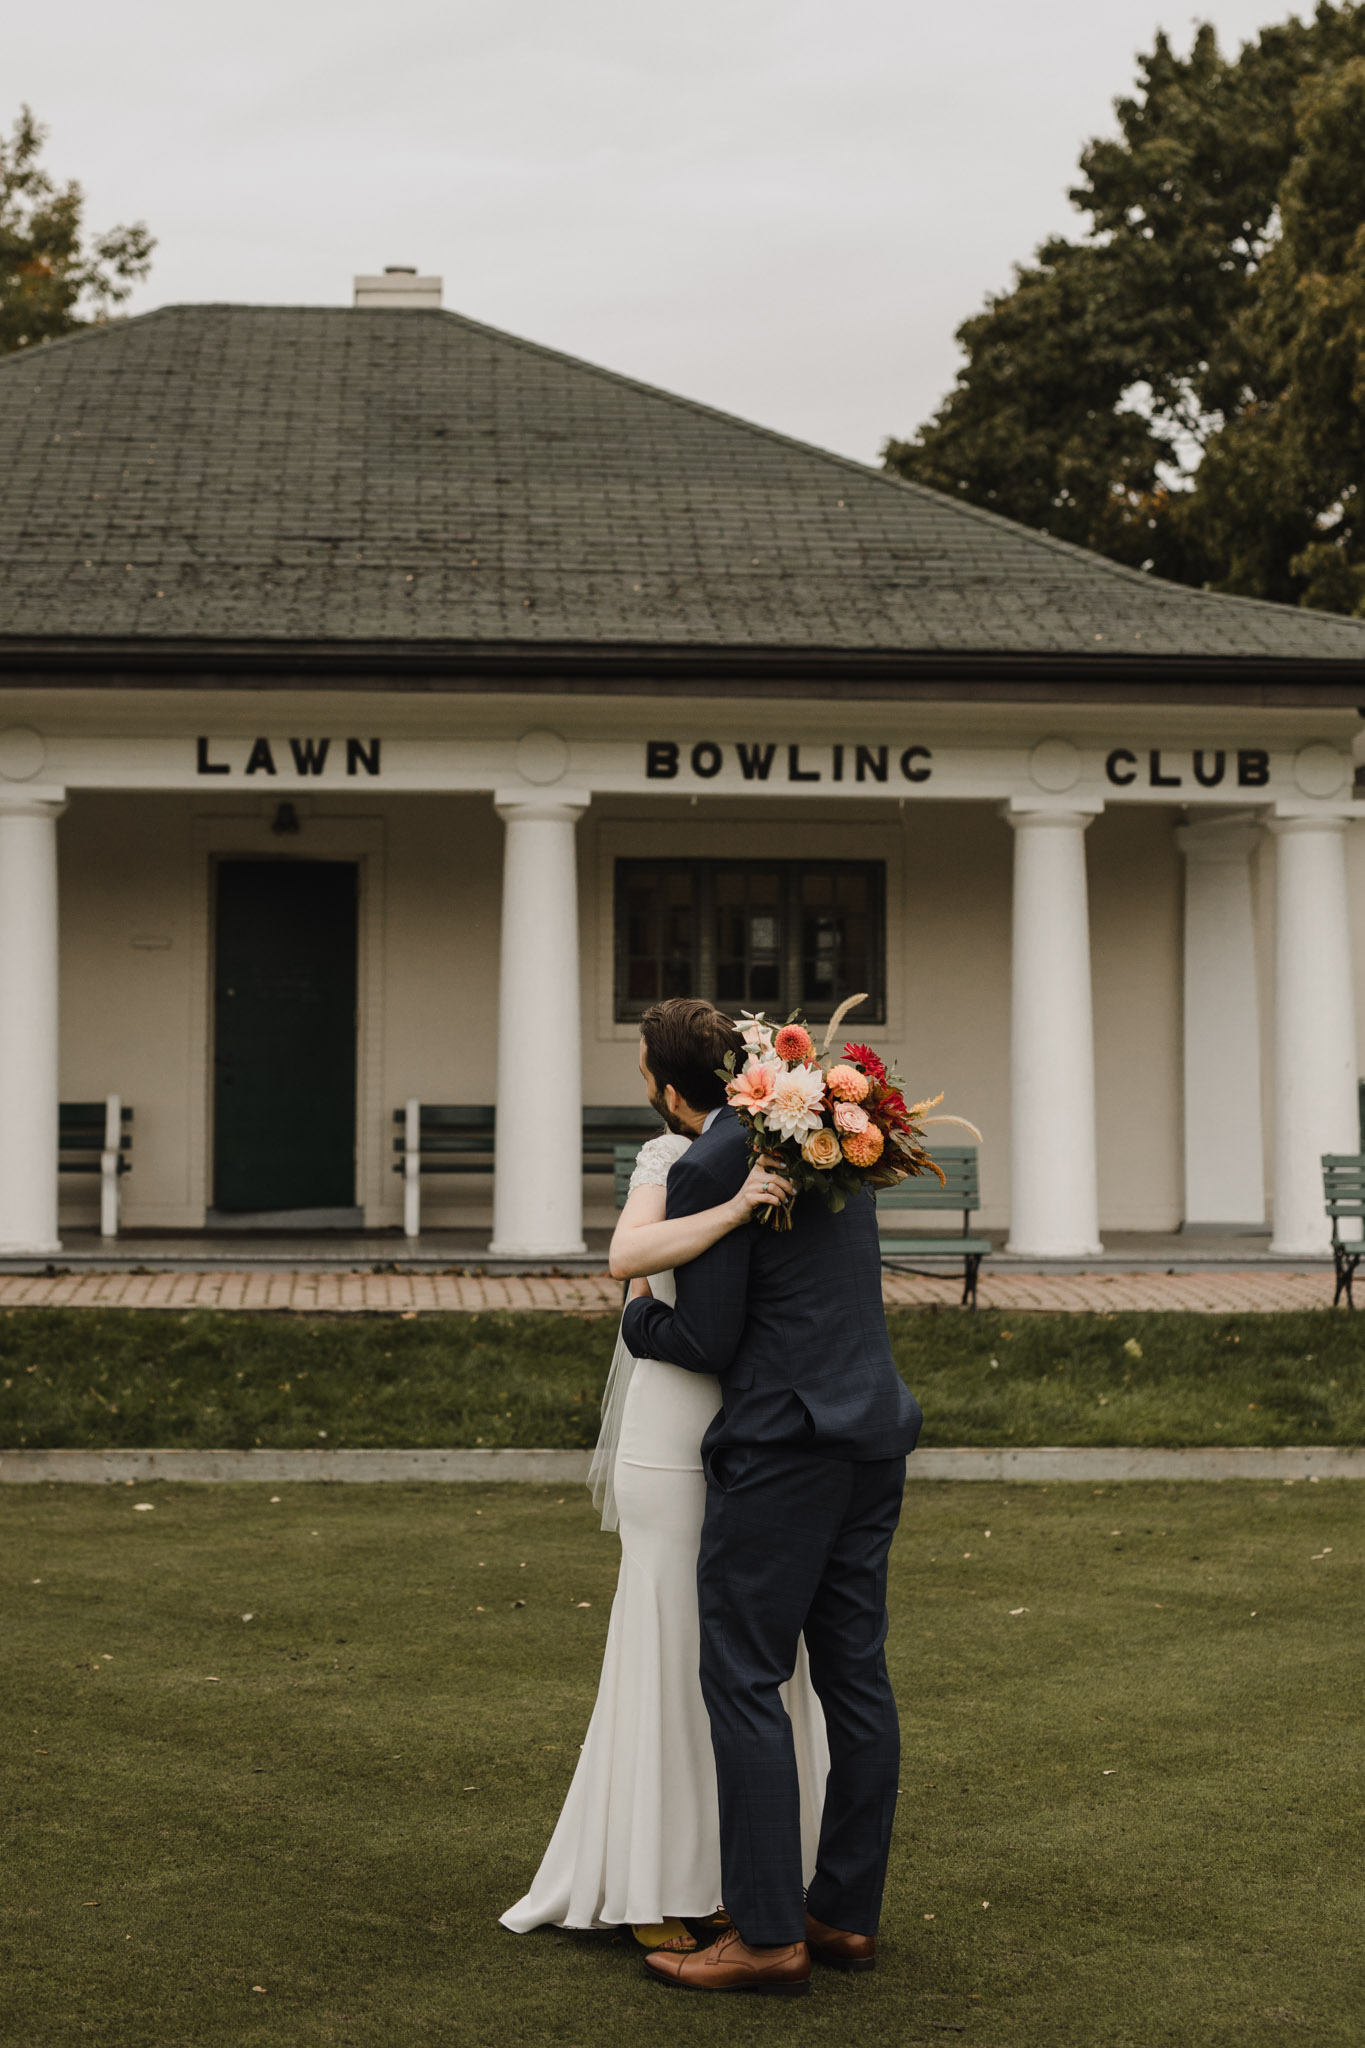 Toronto Lawn Bowling Club Wedding - first look reaction